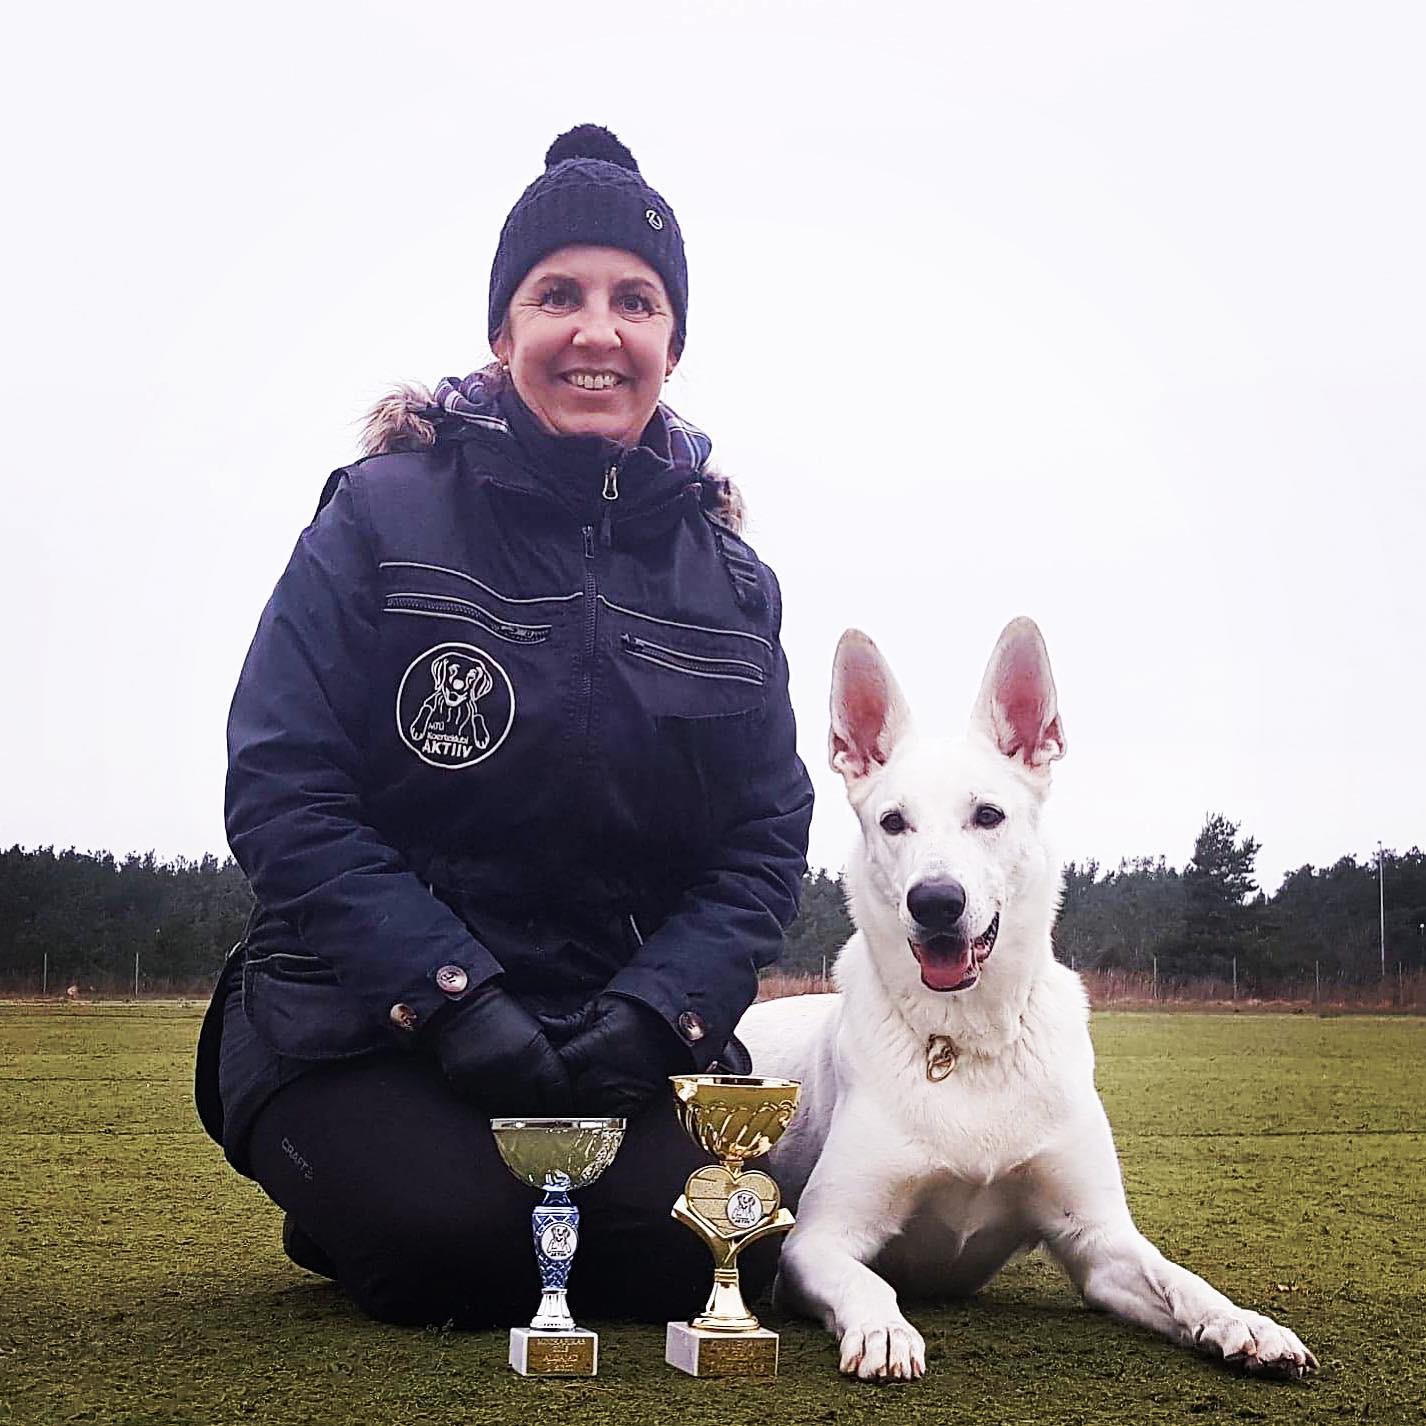 White Shepherd Born to Win White Caitkeeper Successful Competition Dog